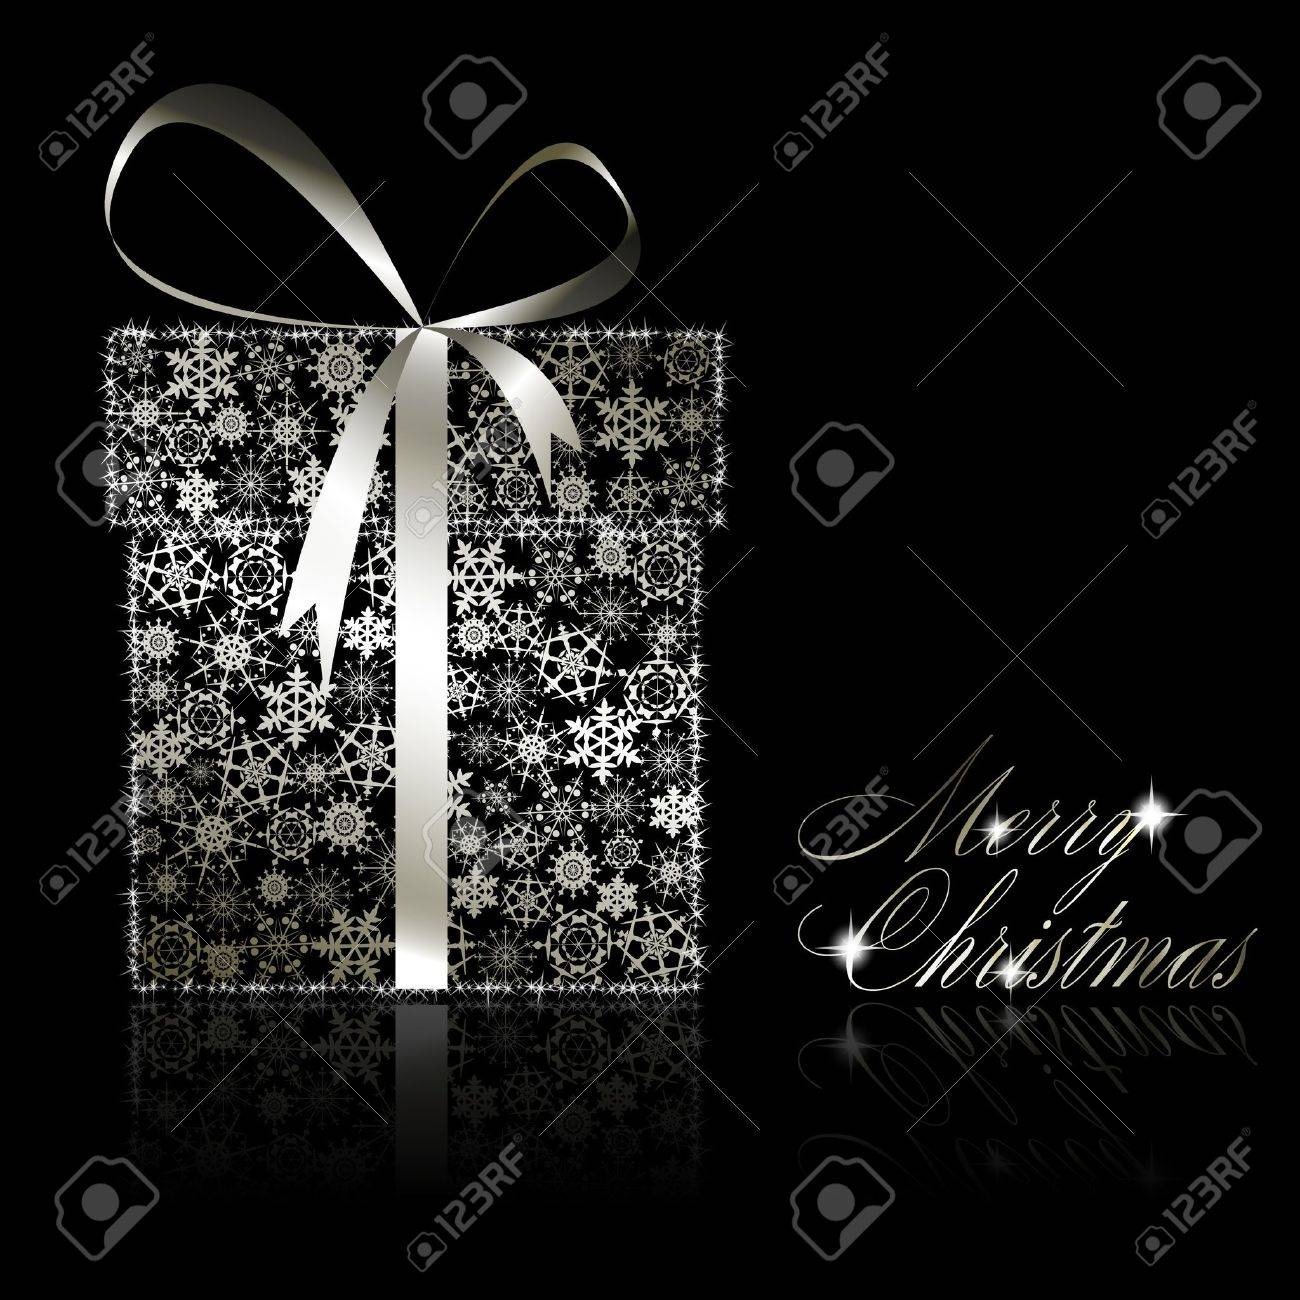 Silver Christmas gift box made of snowflakes and stars on black background.  illustration Stock Vector - 8687406